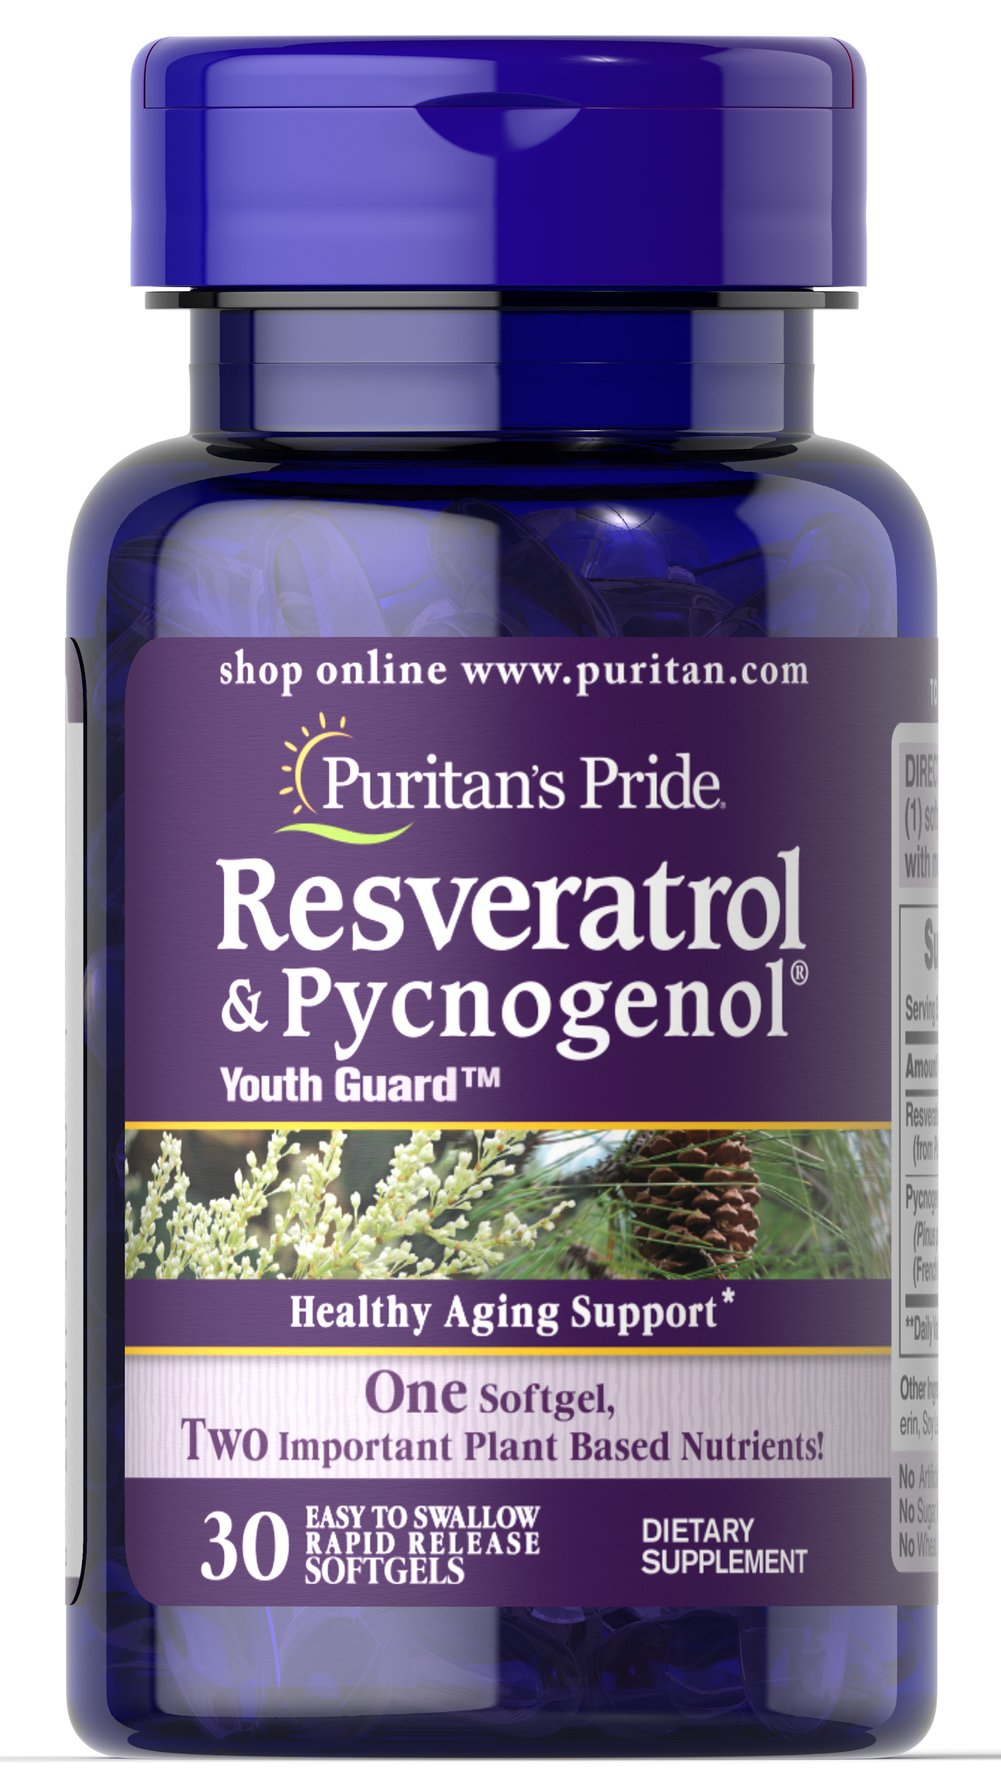 Resveratrol 100 Mg Pycnogenol 30 Mg 30 Softgels Antioxidants Supplements Puritan S Pride